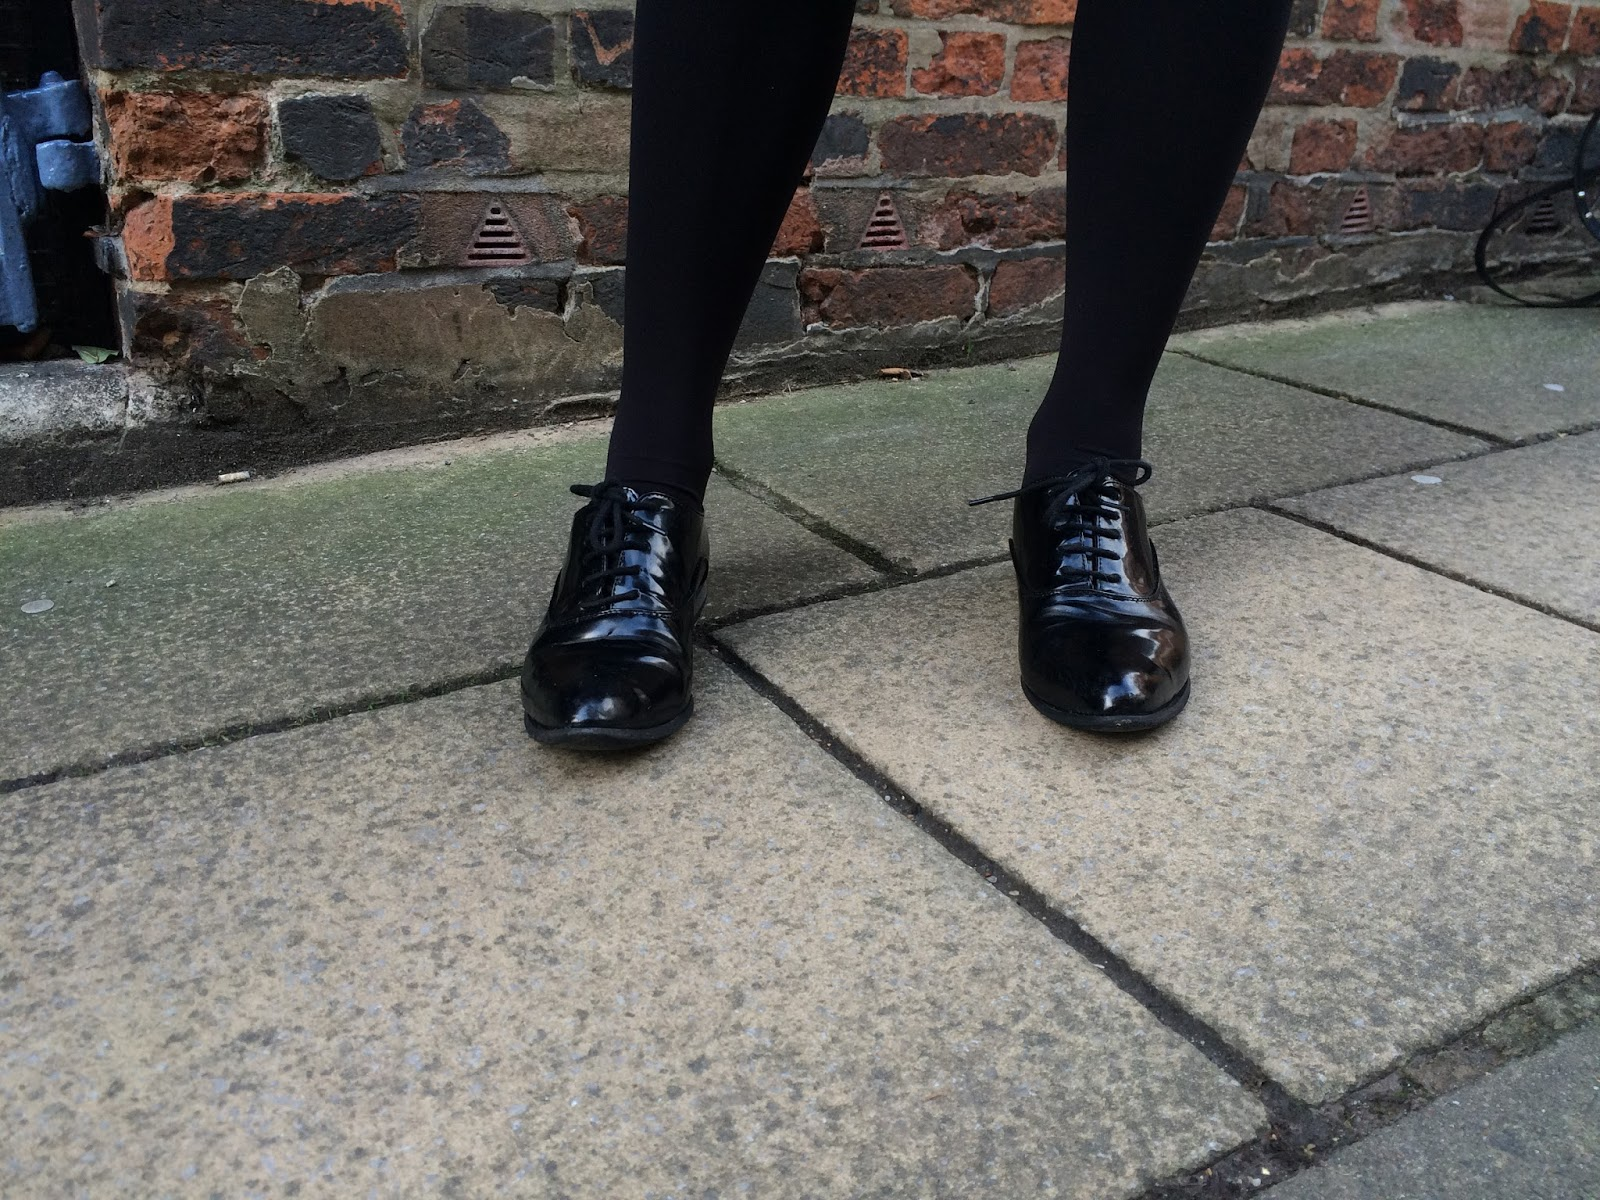 ootd,outfit post, fashion blogger, street style, look, topshop, asos truffle patent brogues